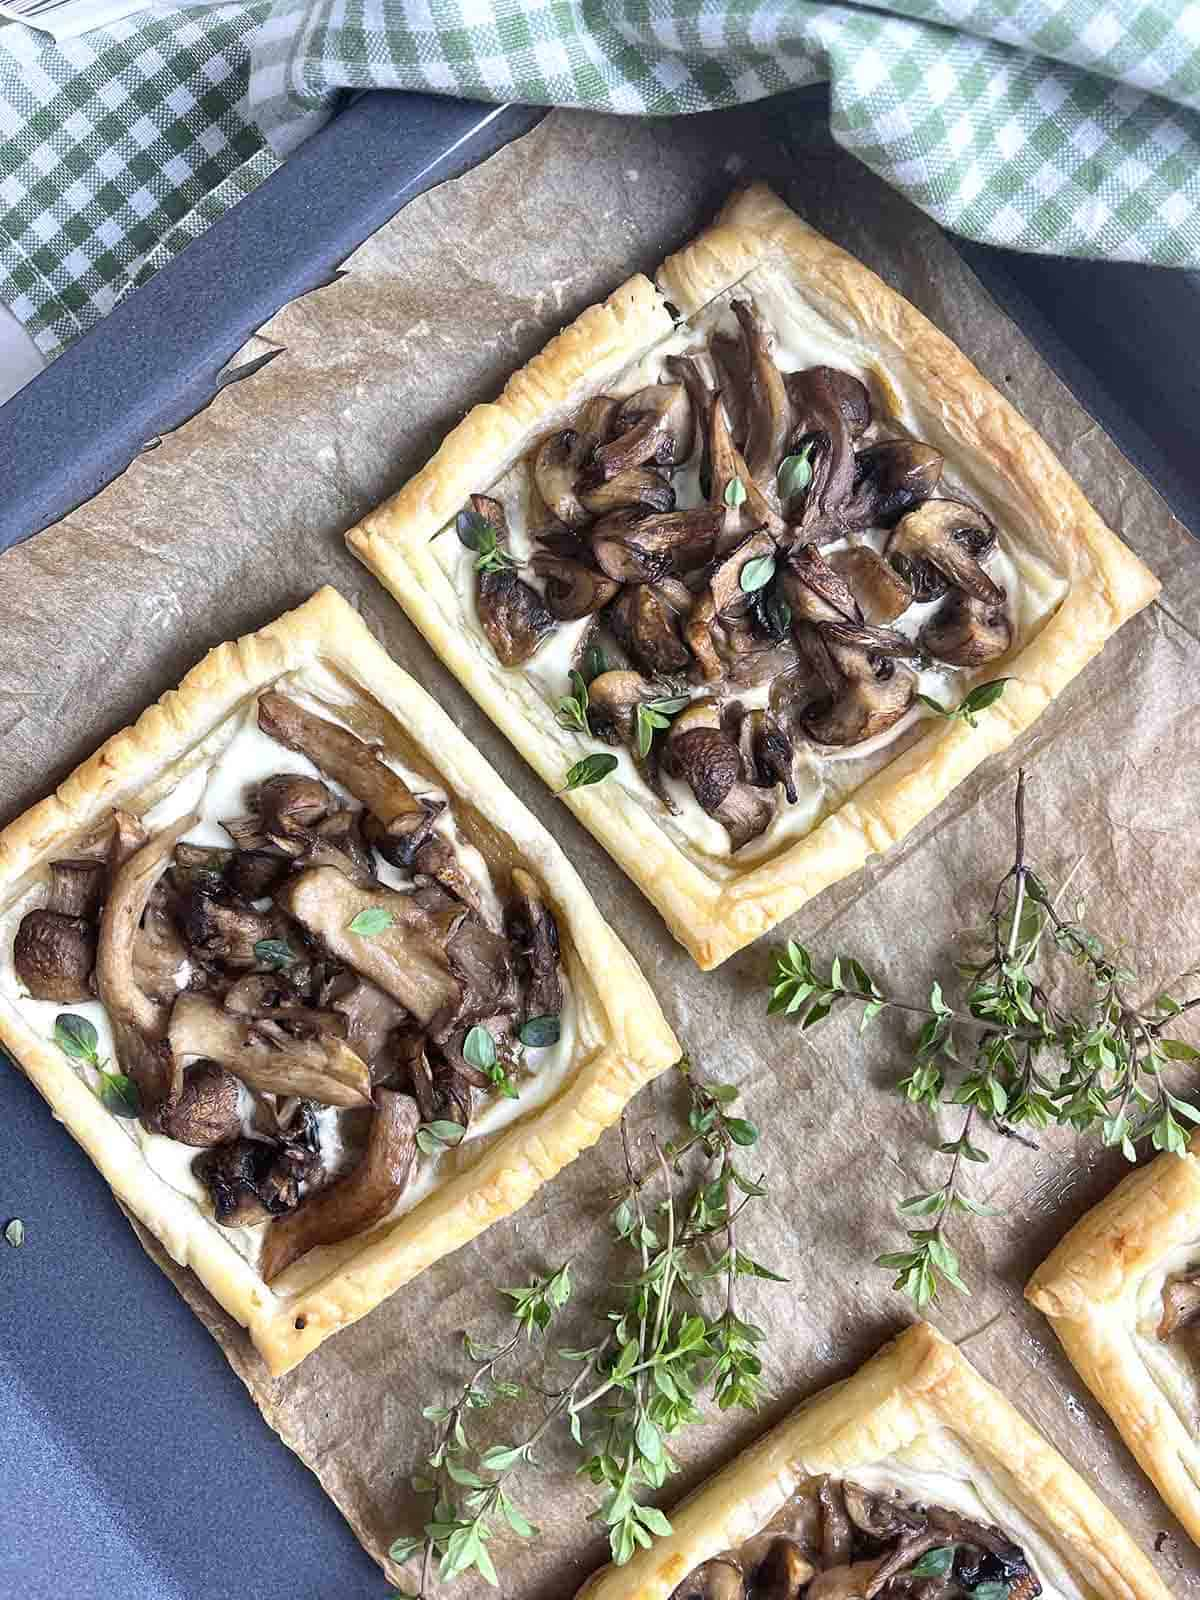 cooked tarts on a baking sheet.